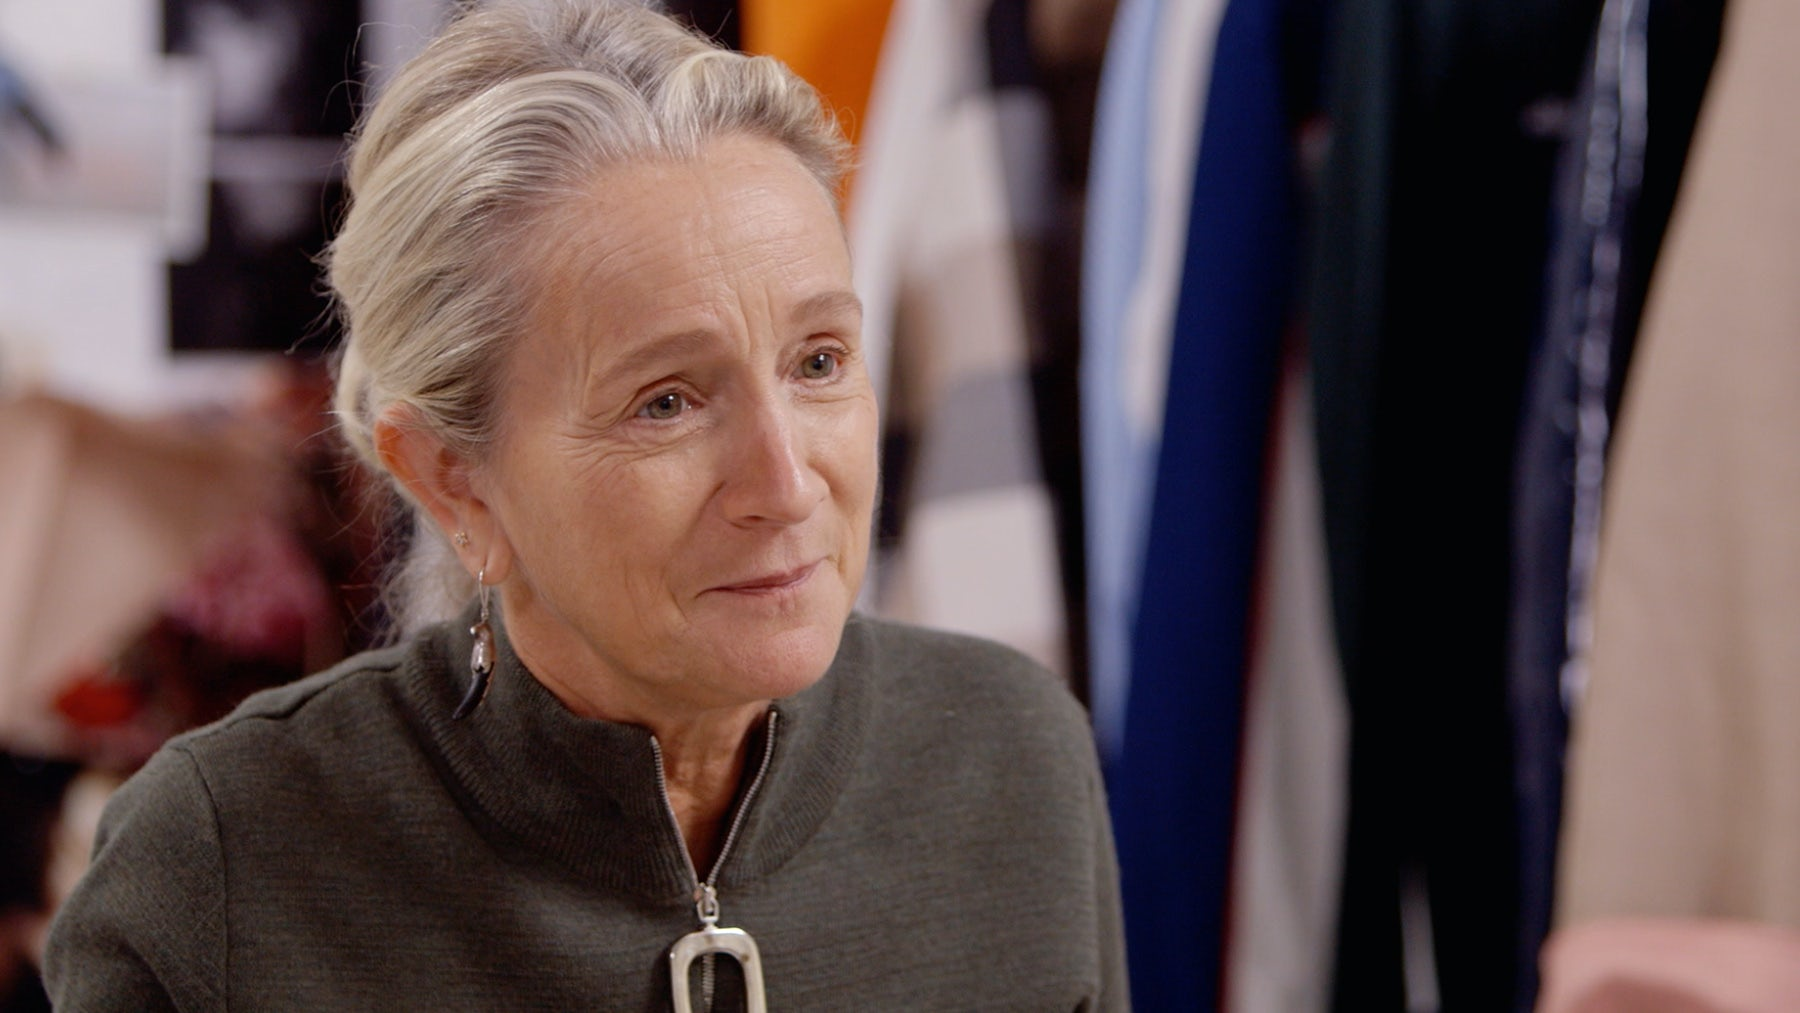 Lucinda Chambers' Top 5 Tips for Success